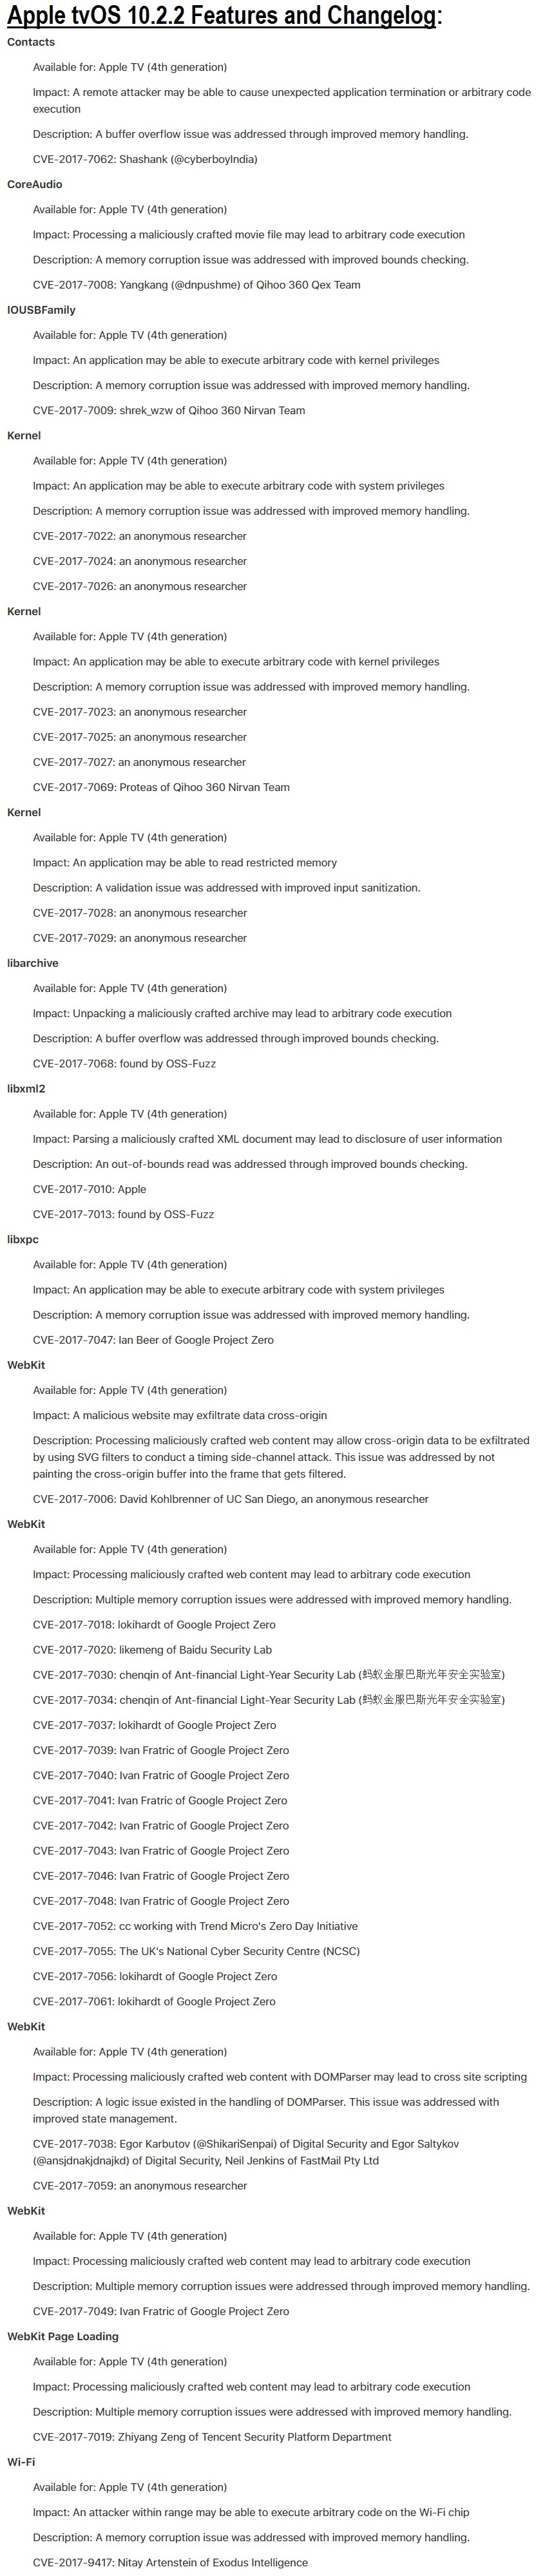 Apple tvOS 10.2.2 Features and Changelog